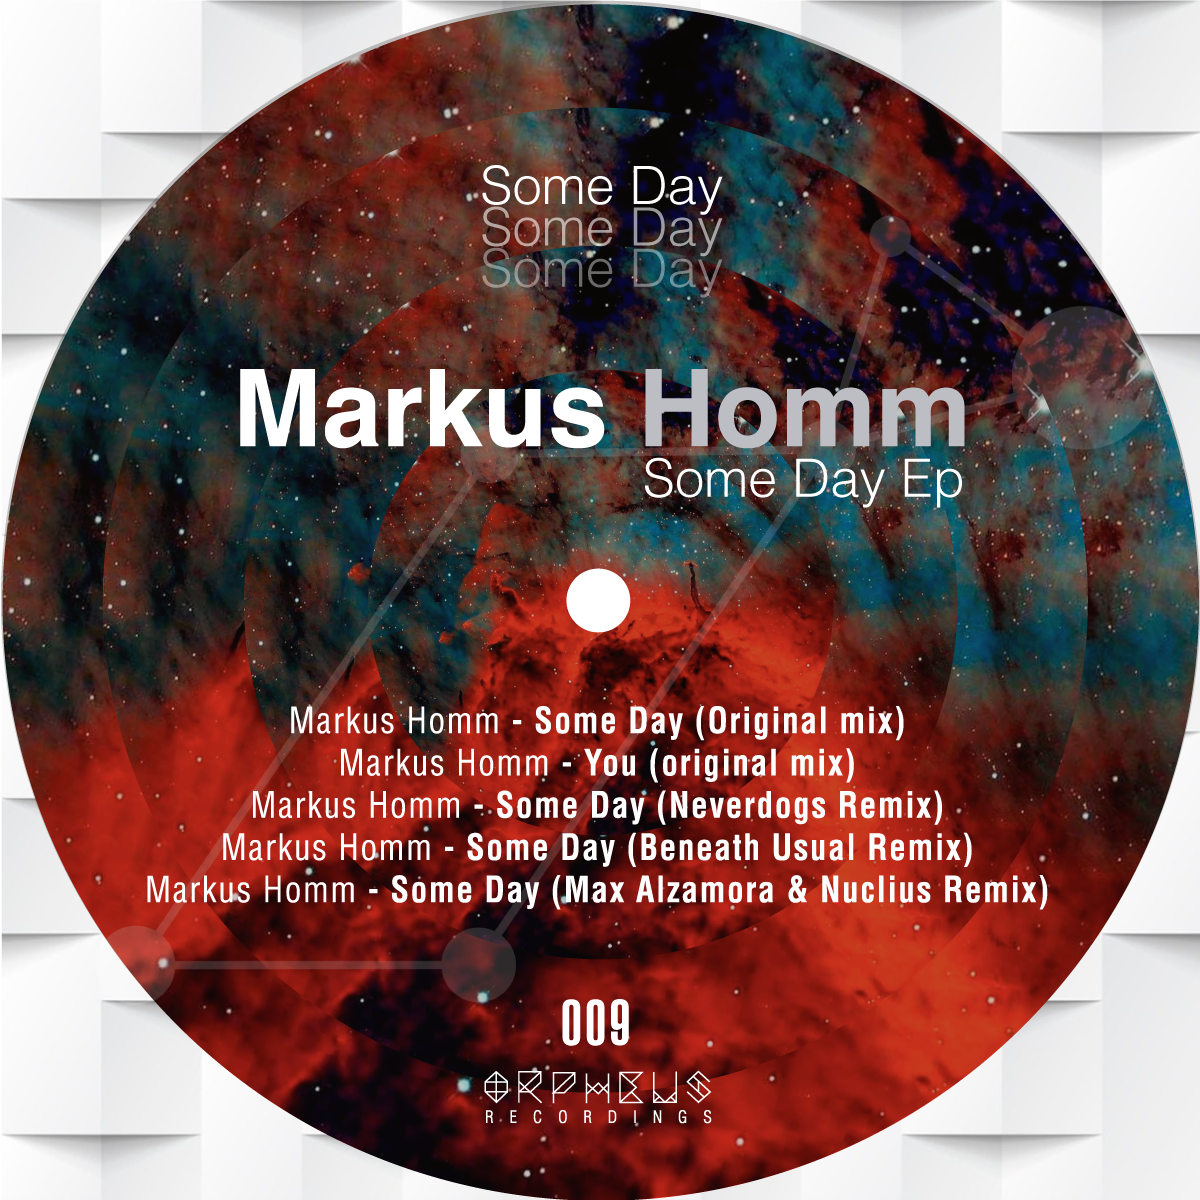 Markus Homm - Some days (Beneath usual remix)